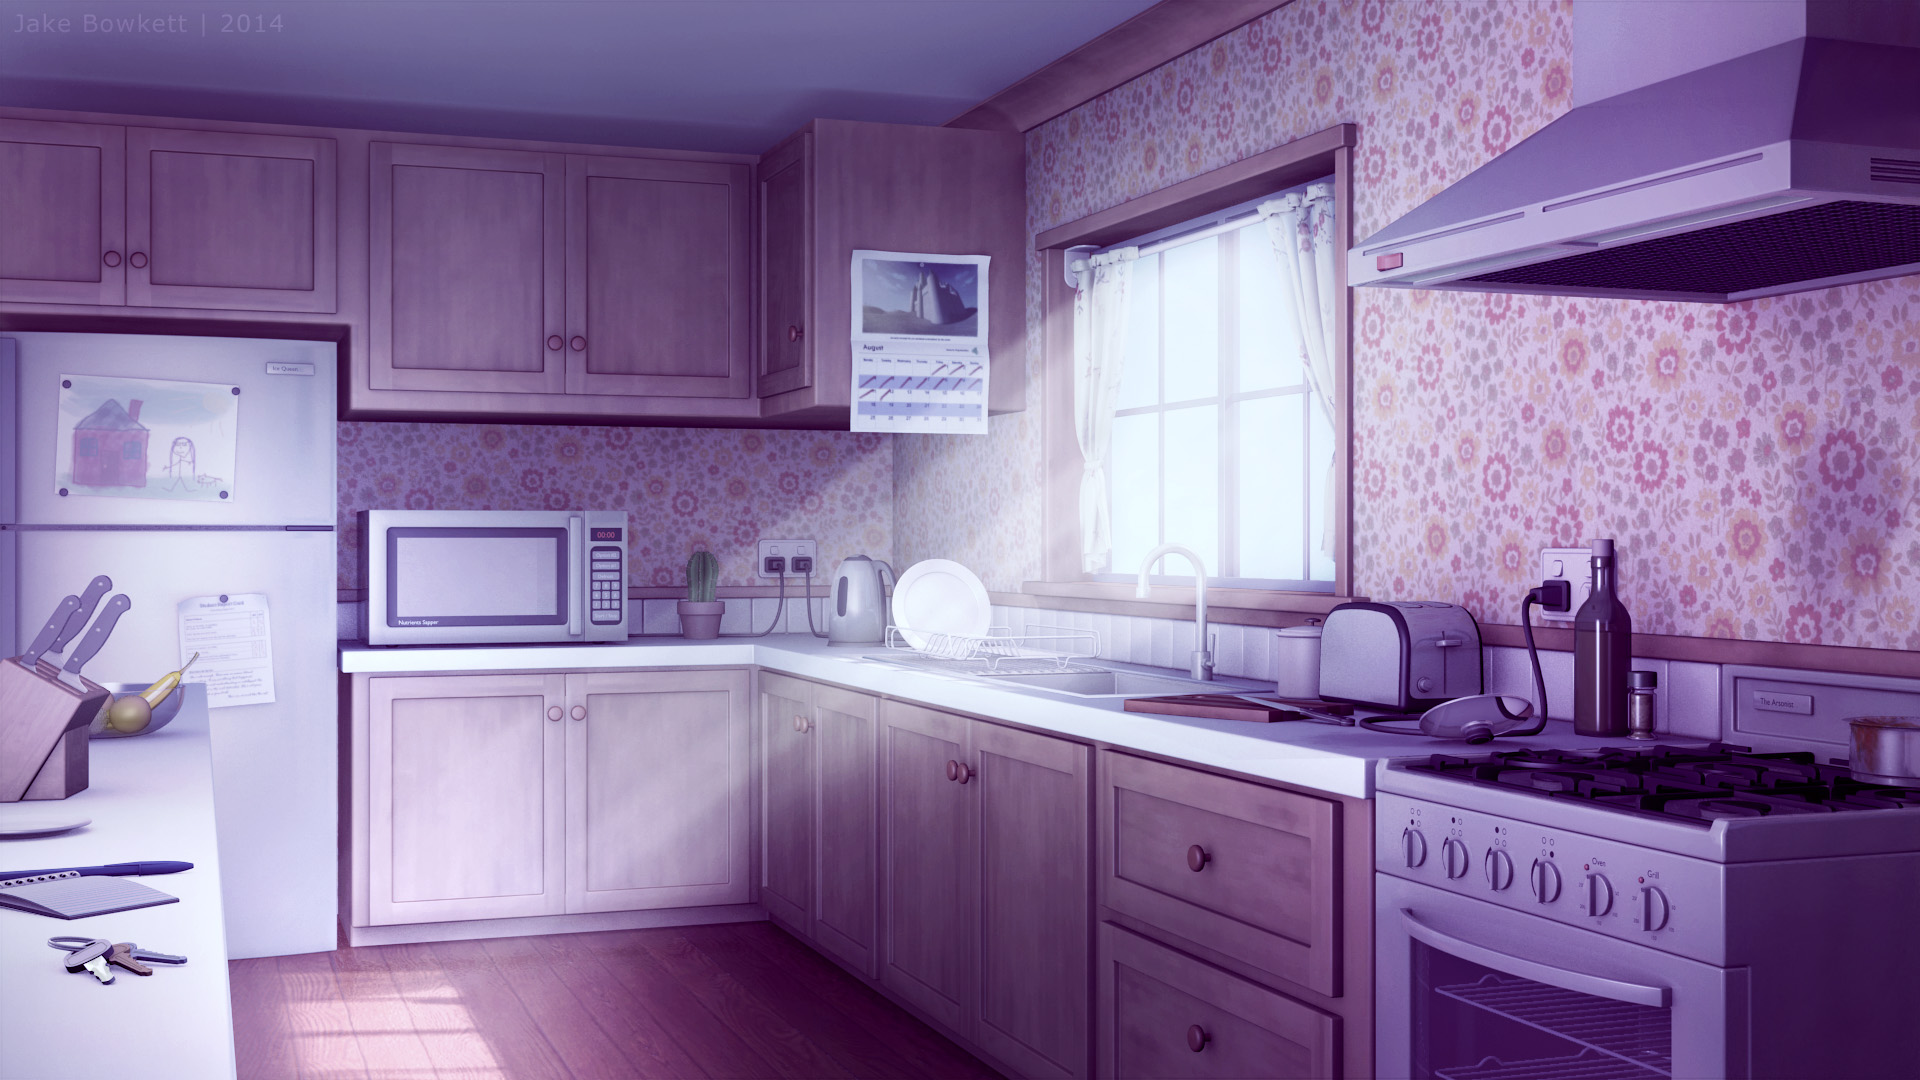 Kitchen By Jakebowkett On Deviantart